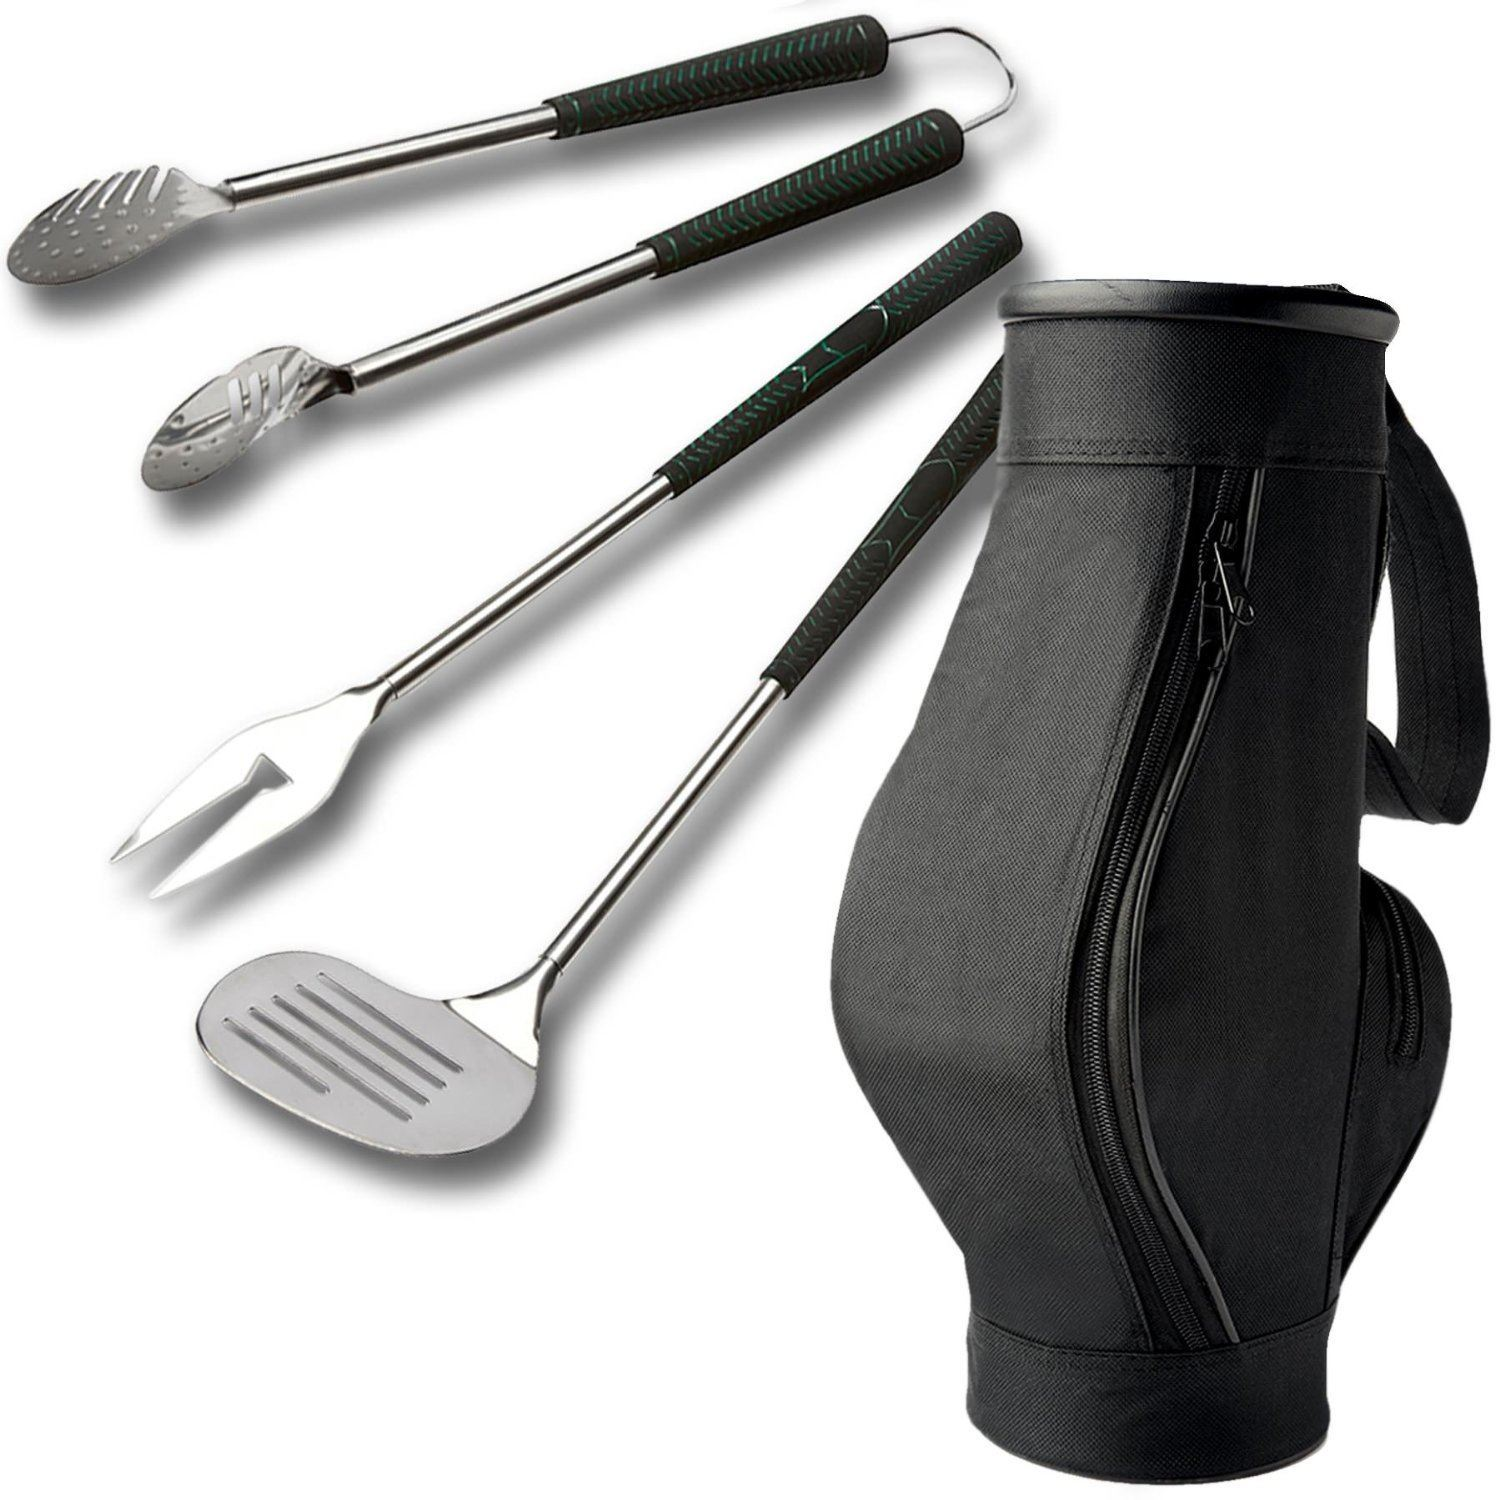 brundle gardener 3 piece bbq golf bag grips steel barbacue tool utensils set ebay. Black Bedroom Furniture Sets. Home Design Ideas